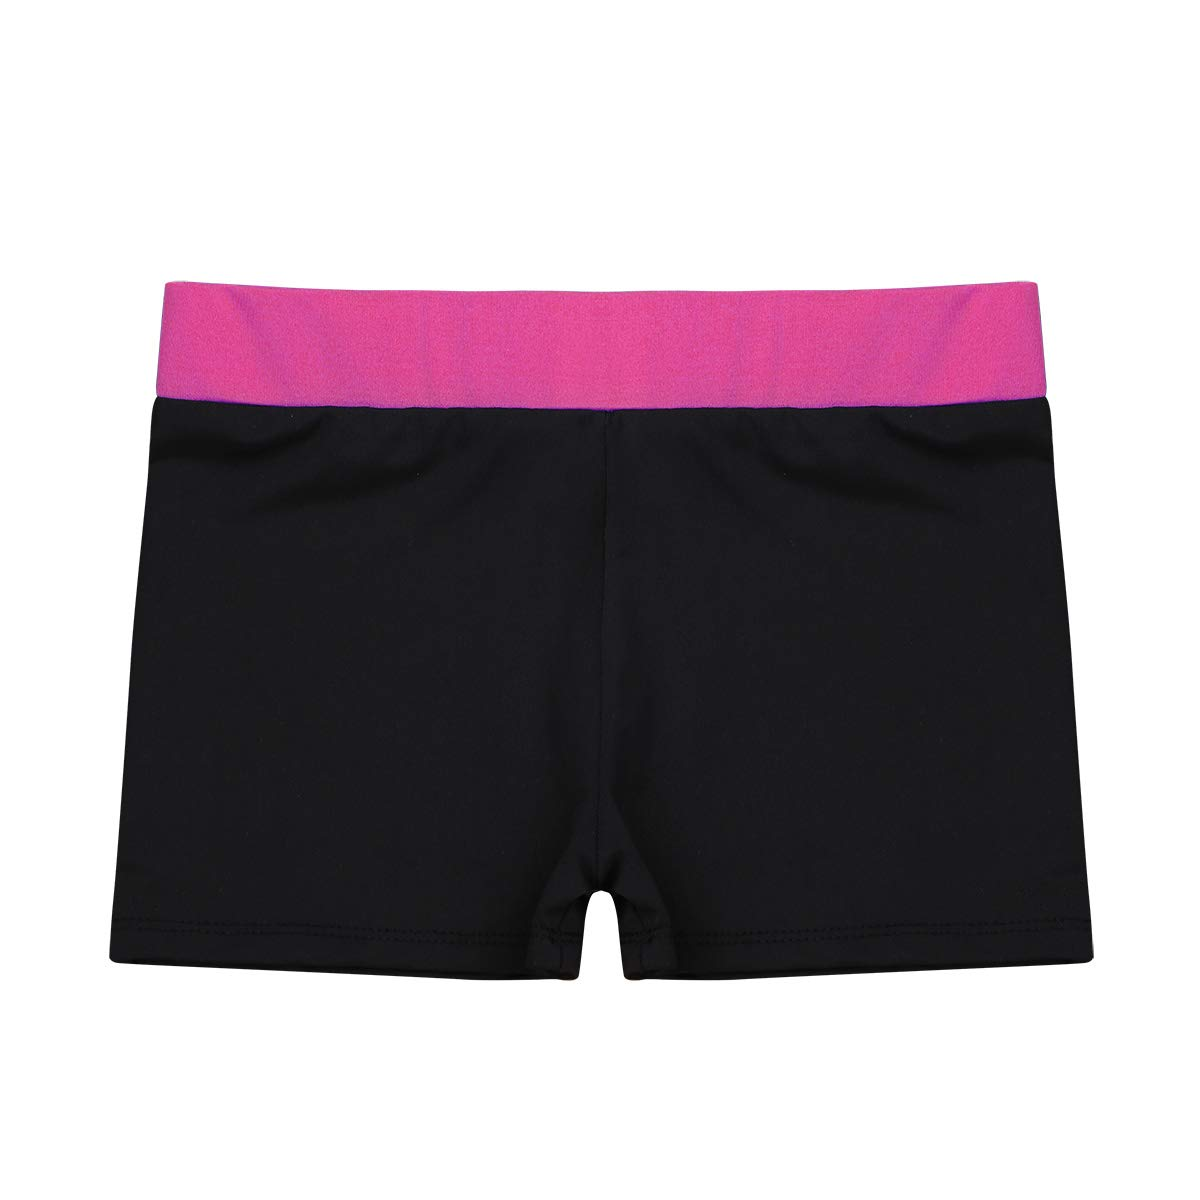 iEFiEL SHORTS ガールズ B07GBSTMM4 12|Rose Red&black Rose Red&black 12